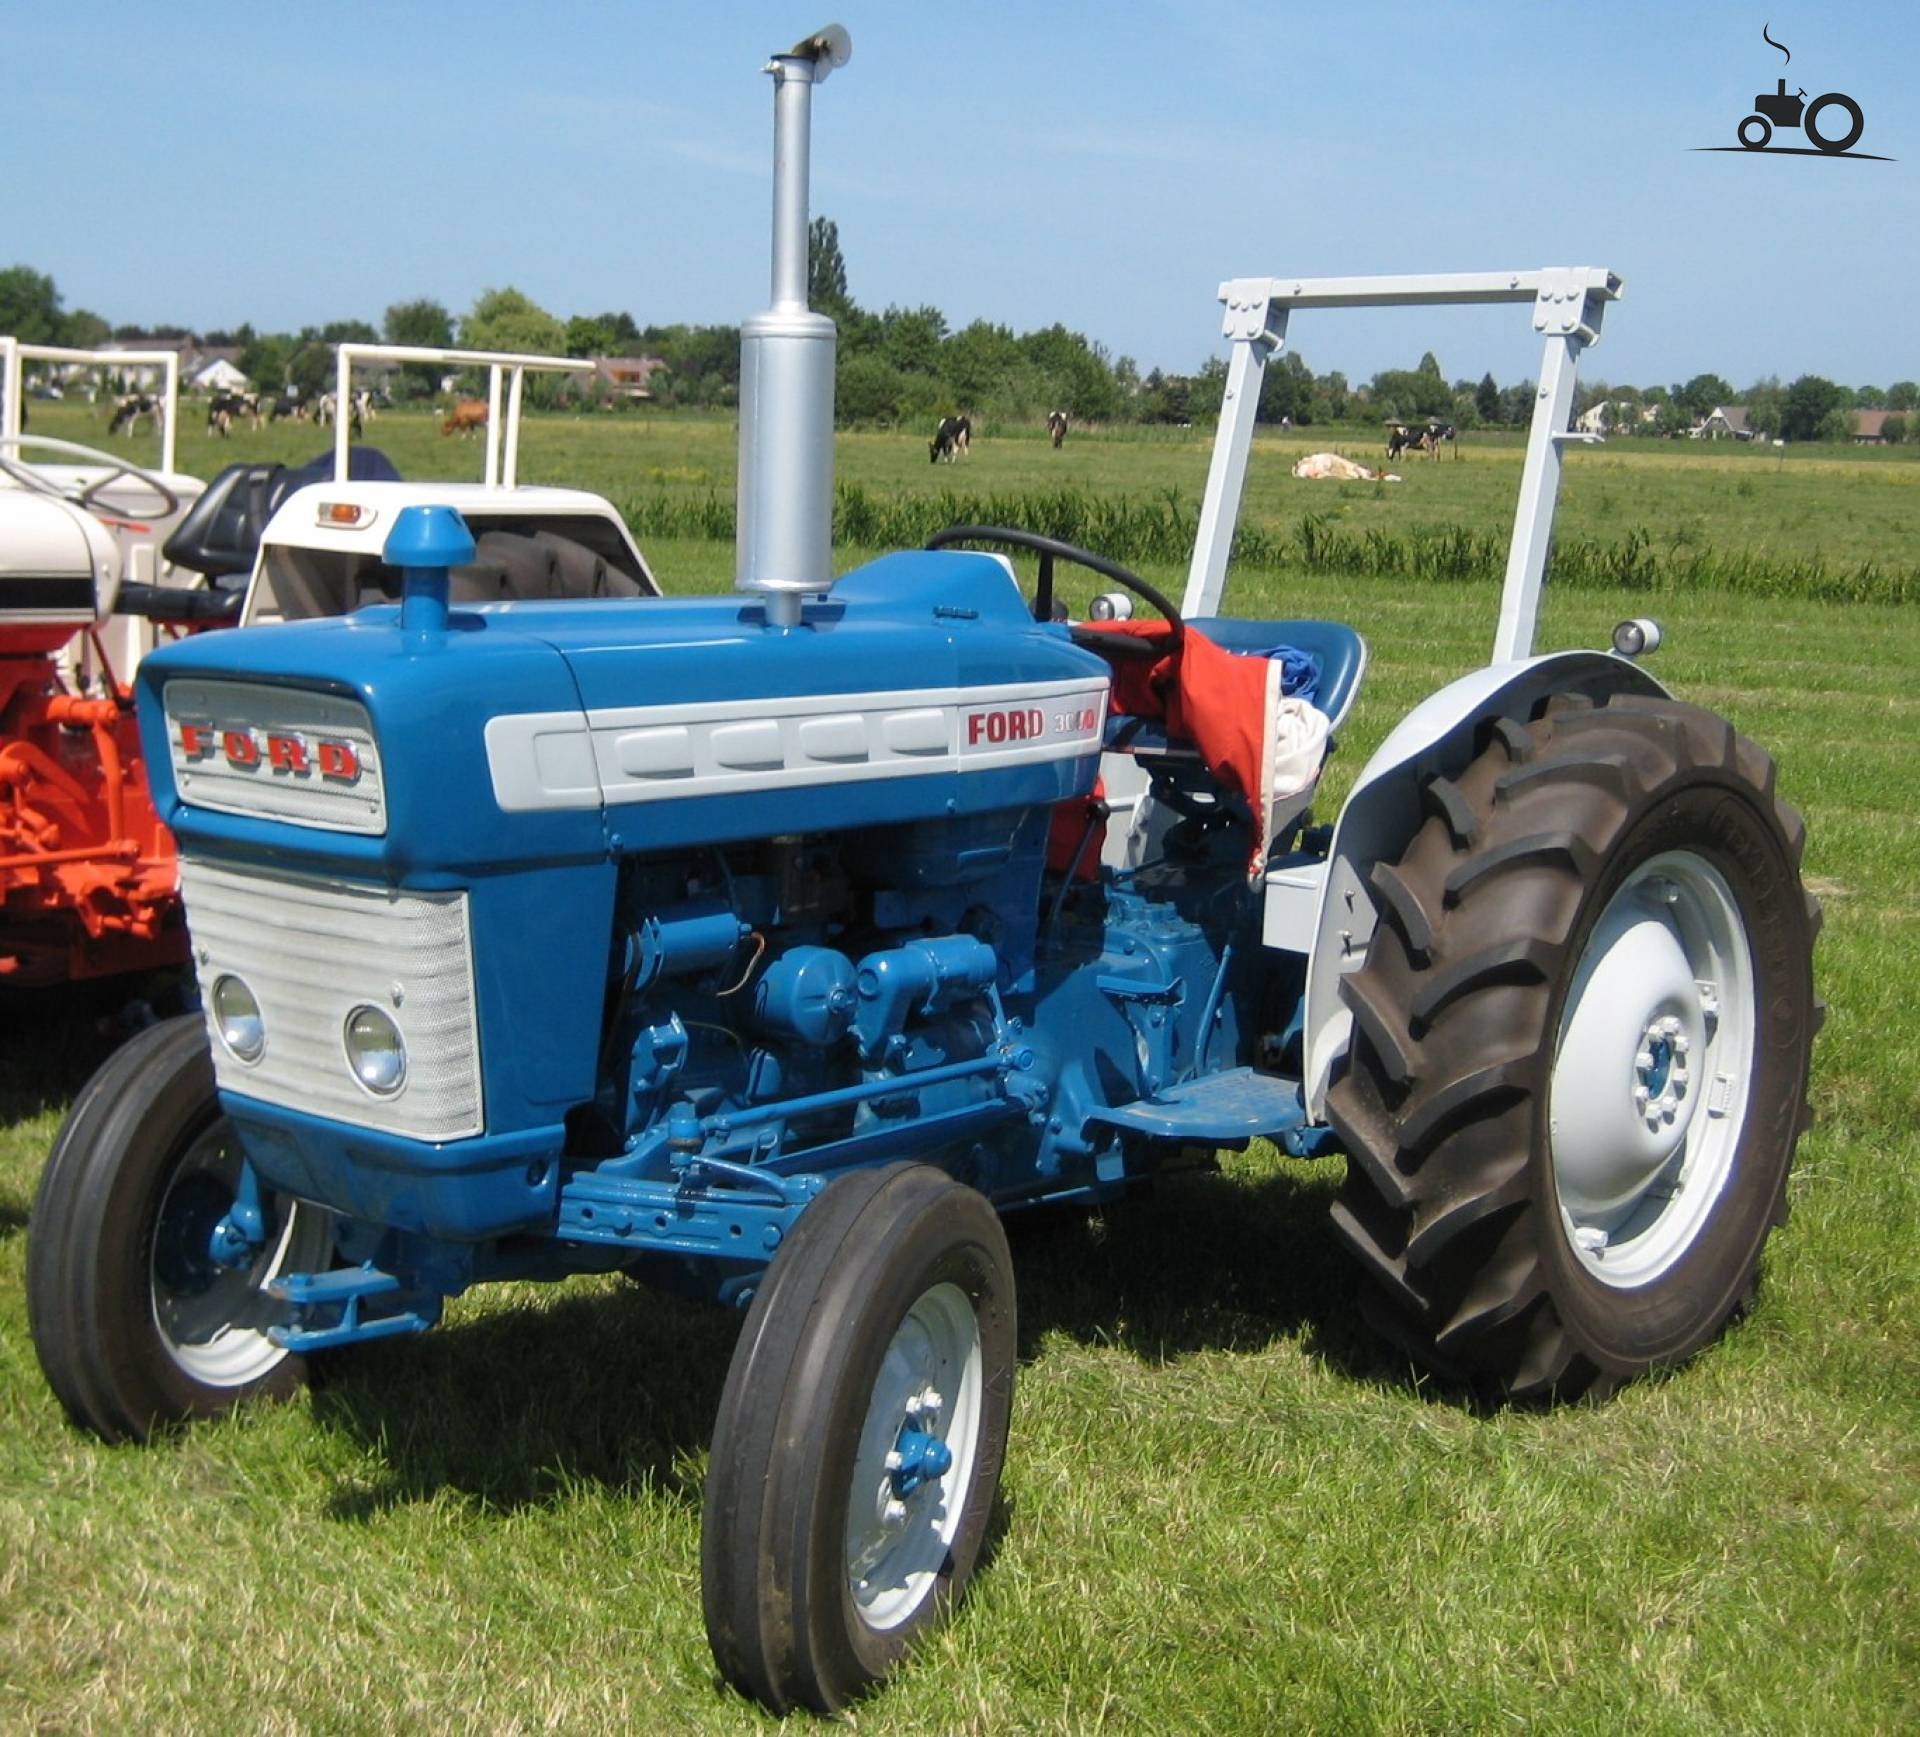 2n Ford Tractor | 2017, 2018, 2019 Ford Price, Release ...